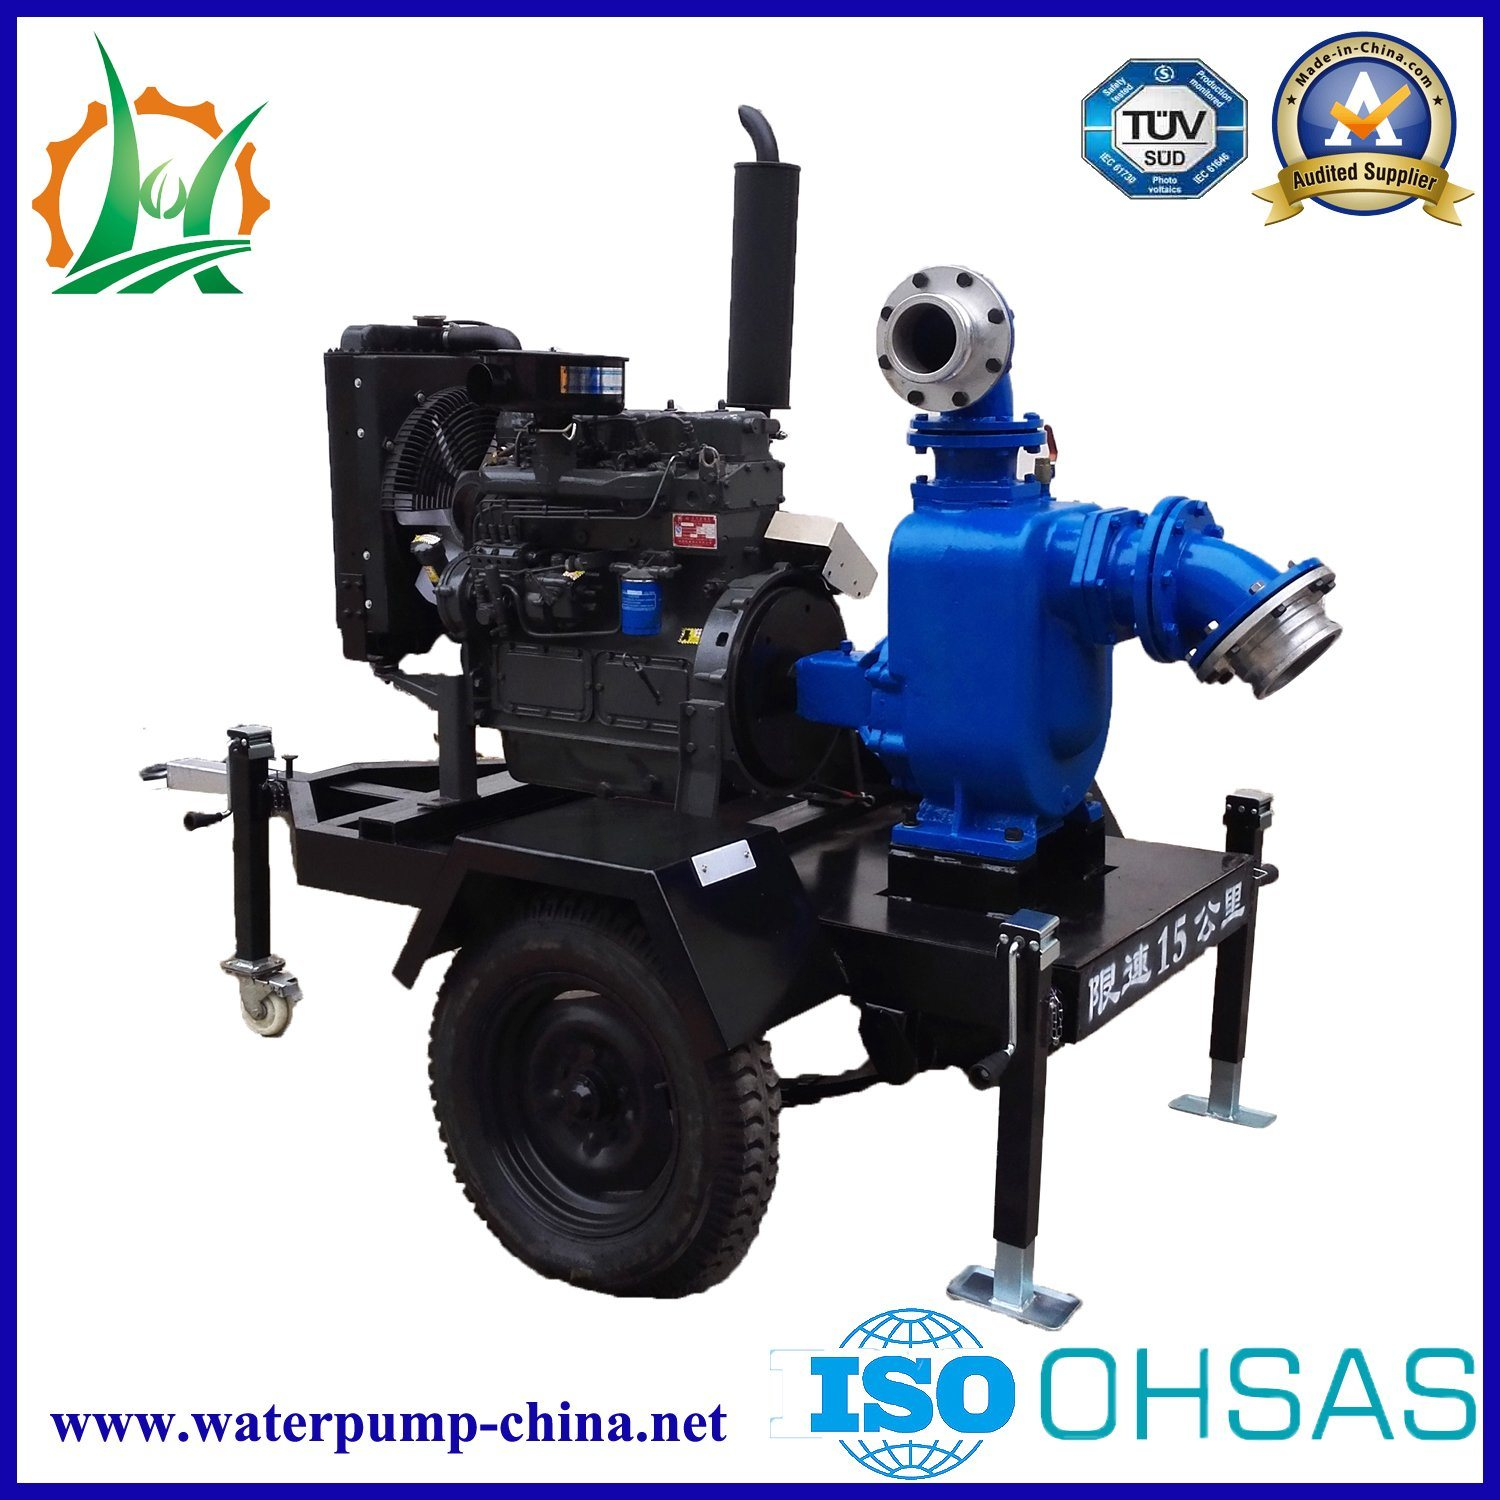 Commercial or Industrial Sewage Pump for Urban Water Supply